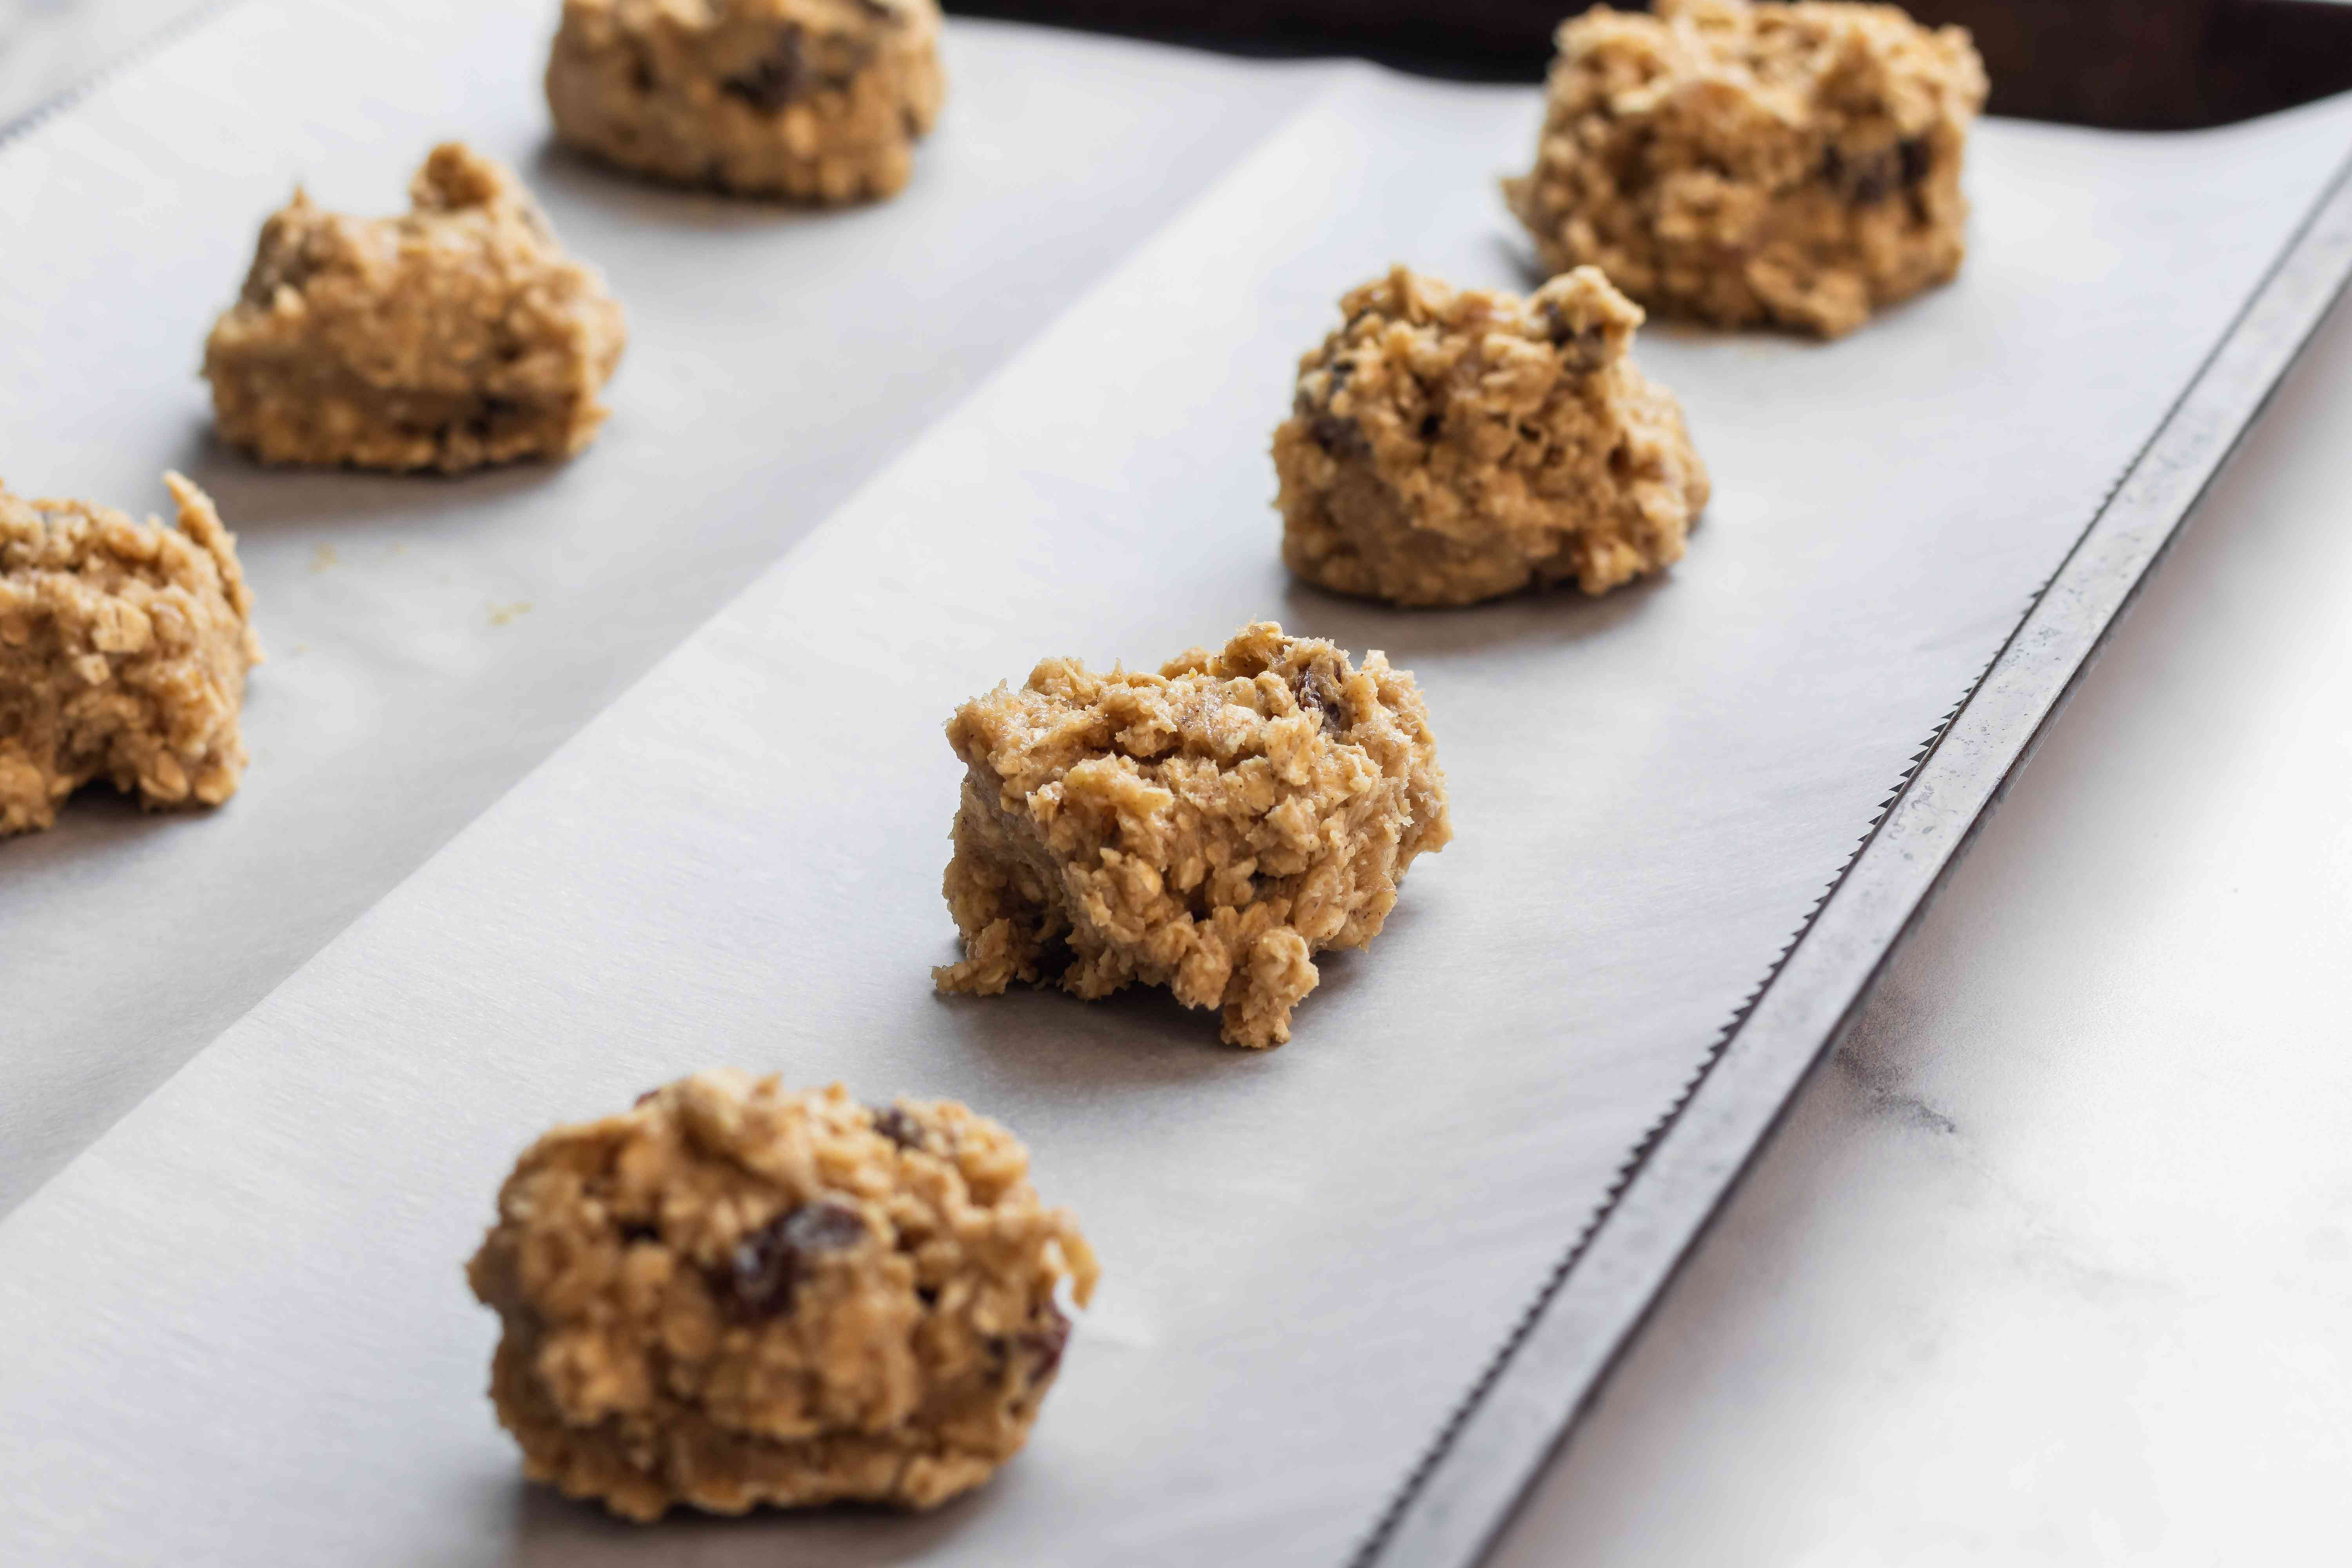 Oatmeal Raisin Cookies scooped on a parchment lined baking sheet.